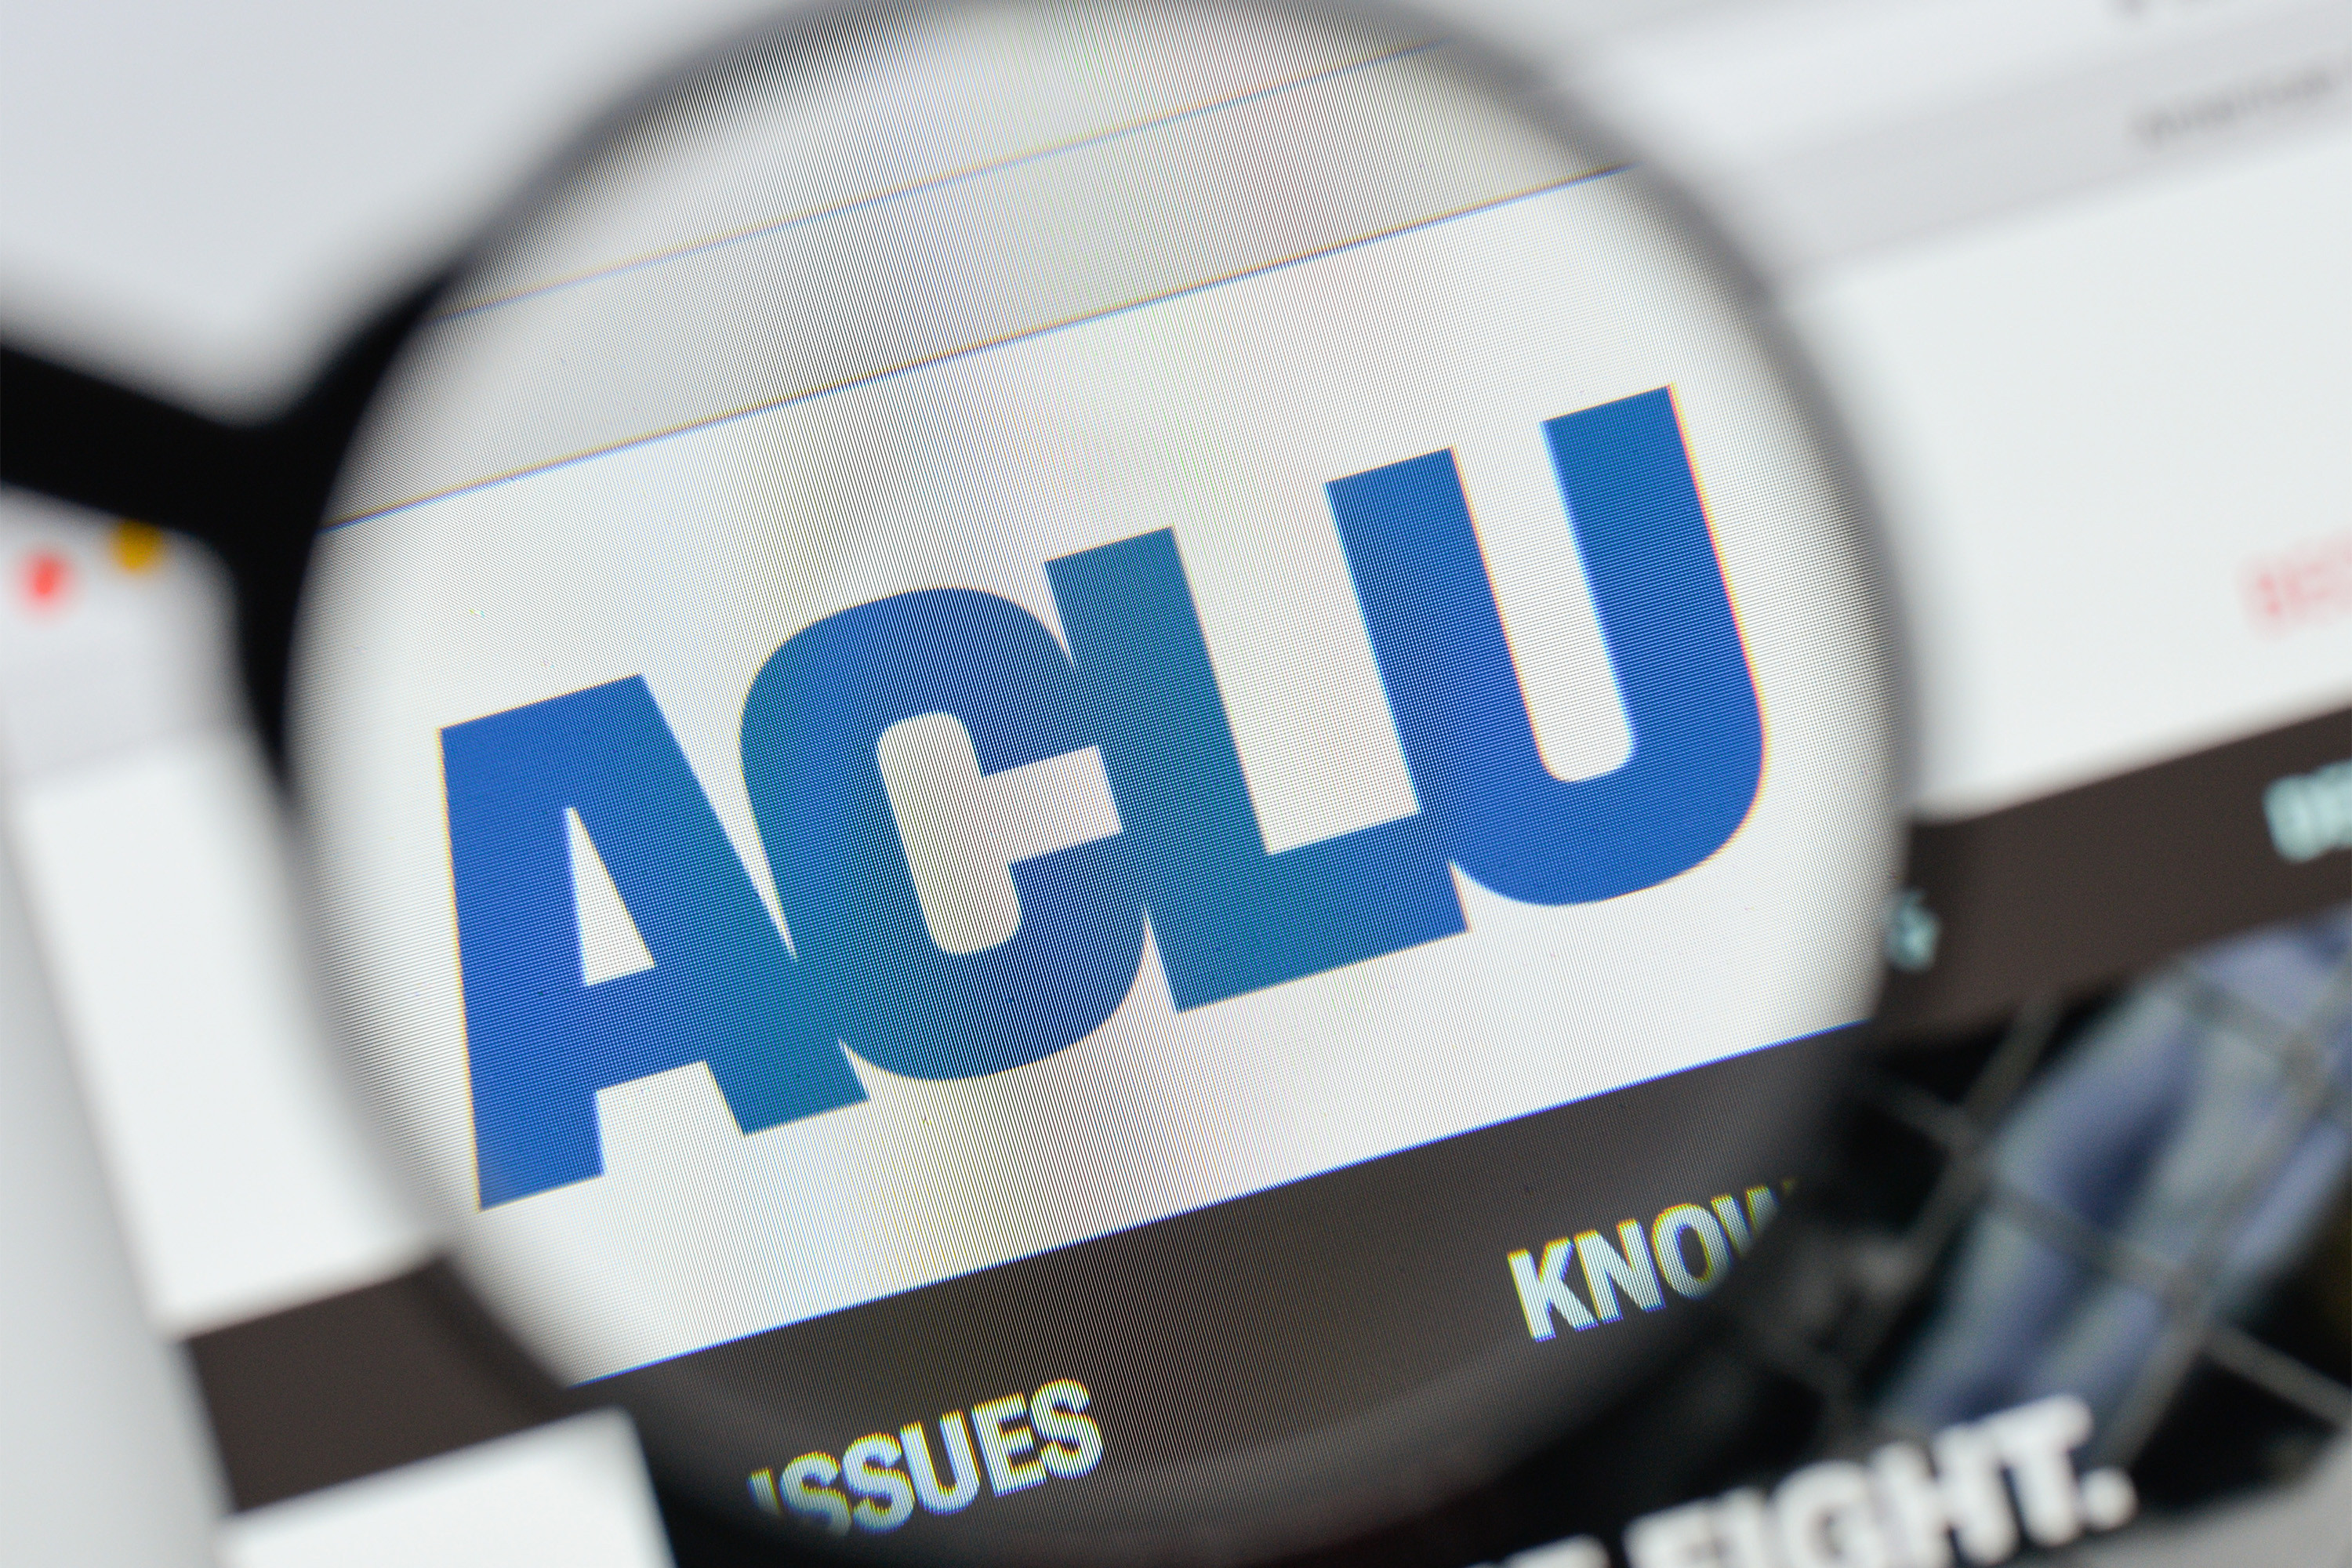 The ACLU has abandoned its mission and other commentary